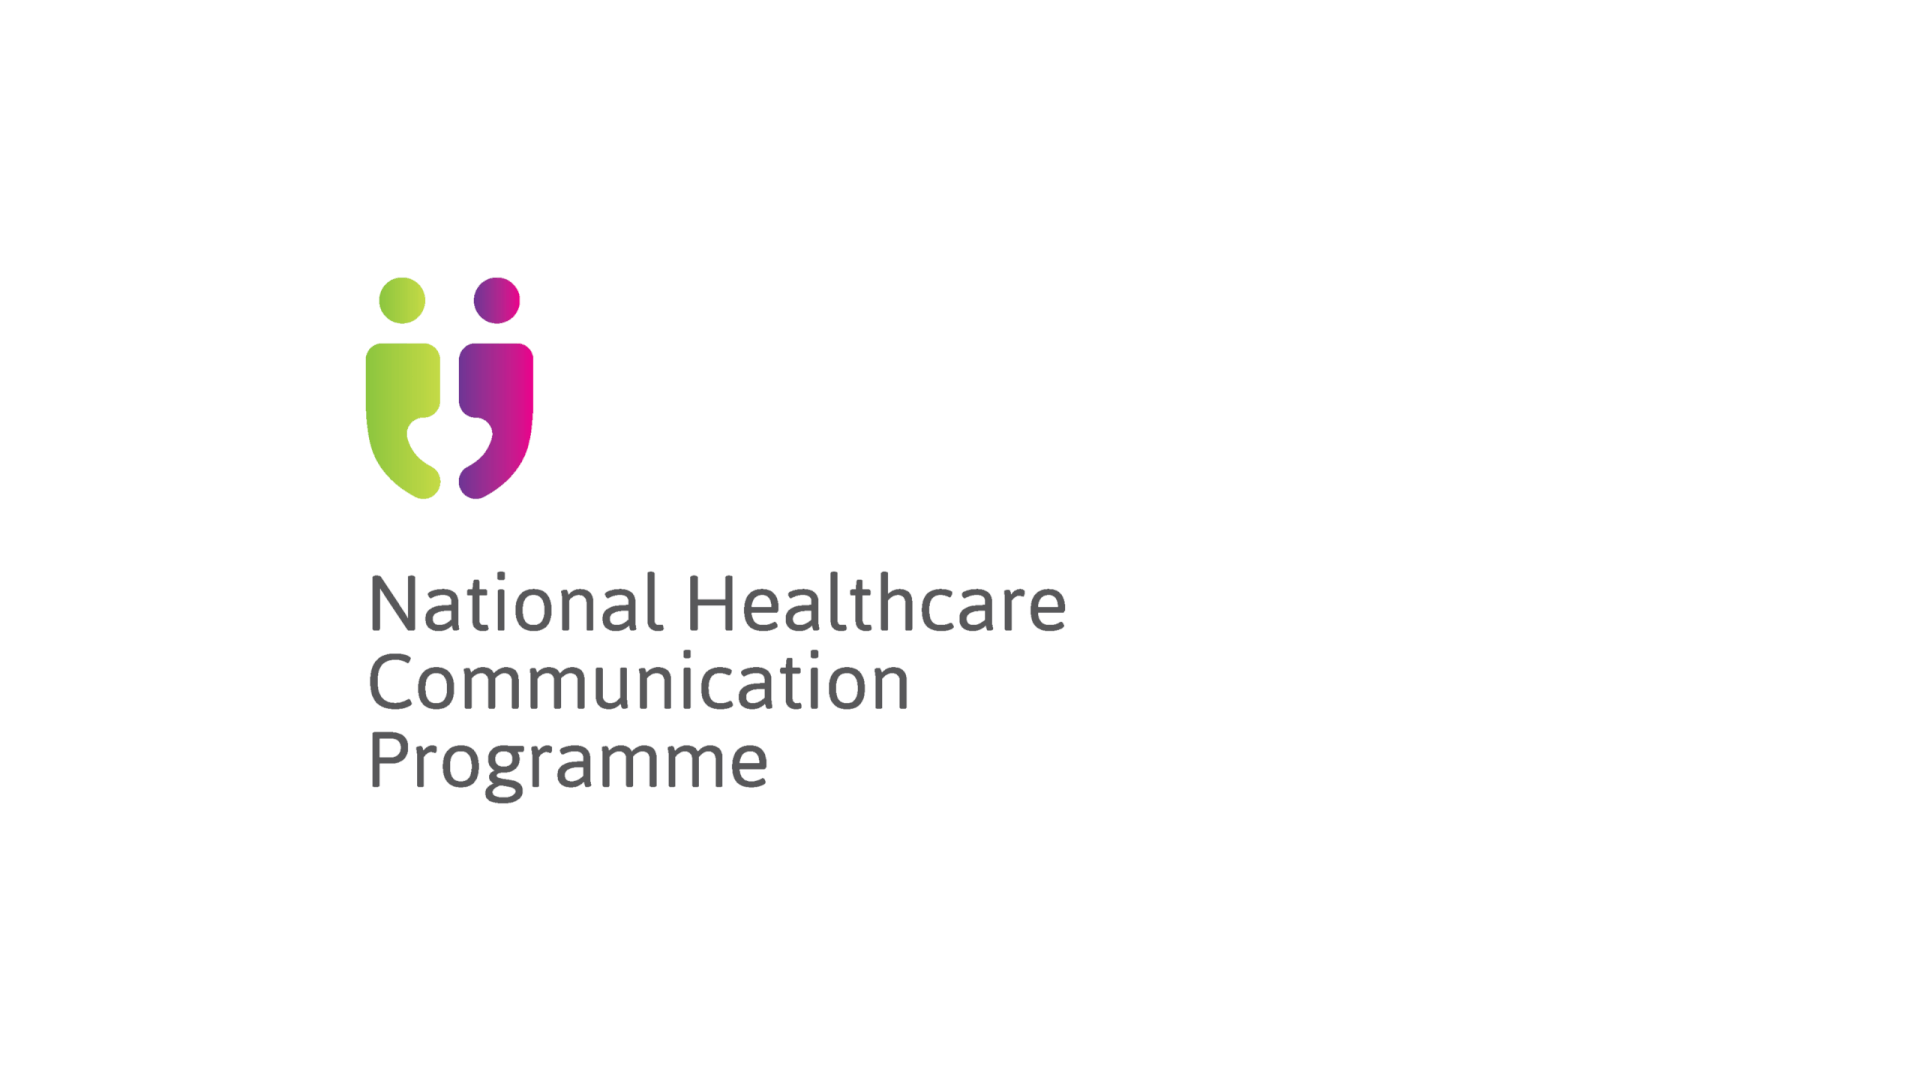 HSE national healthcare communication programme verticallogo